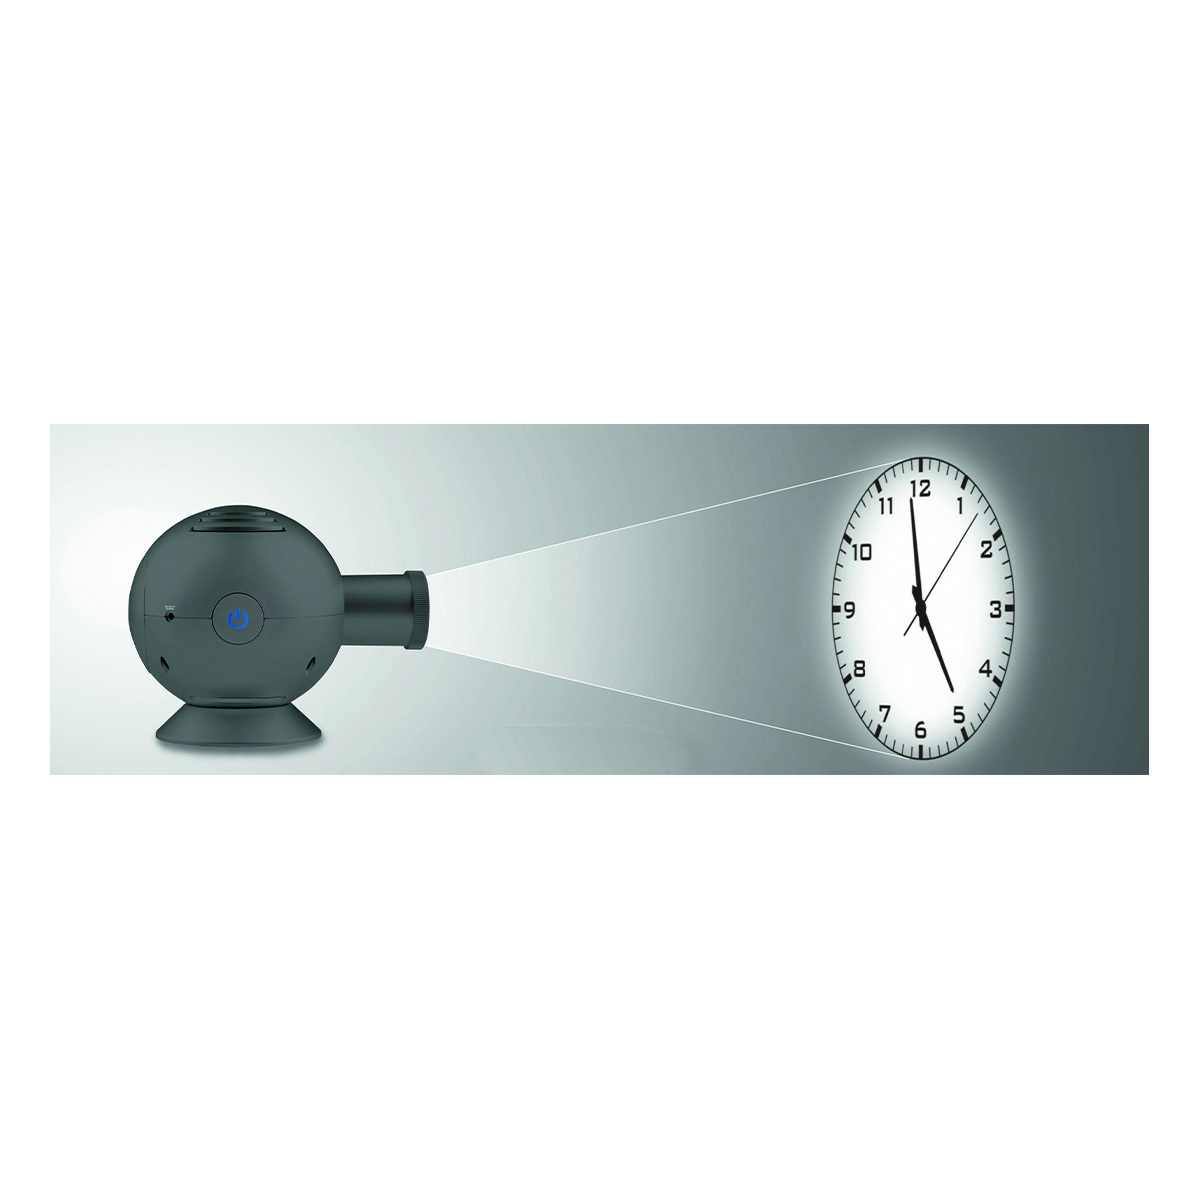 60-5007-analoge-projektionsuhr-time-ball-weiss-1200x1200px.jpg